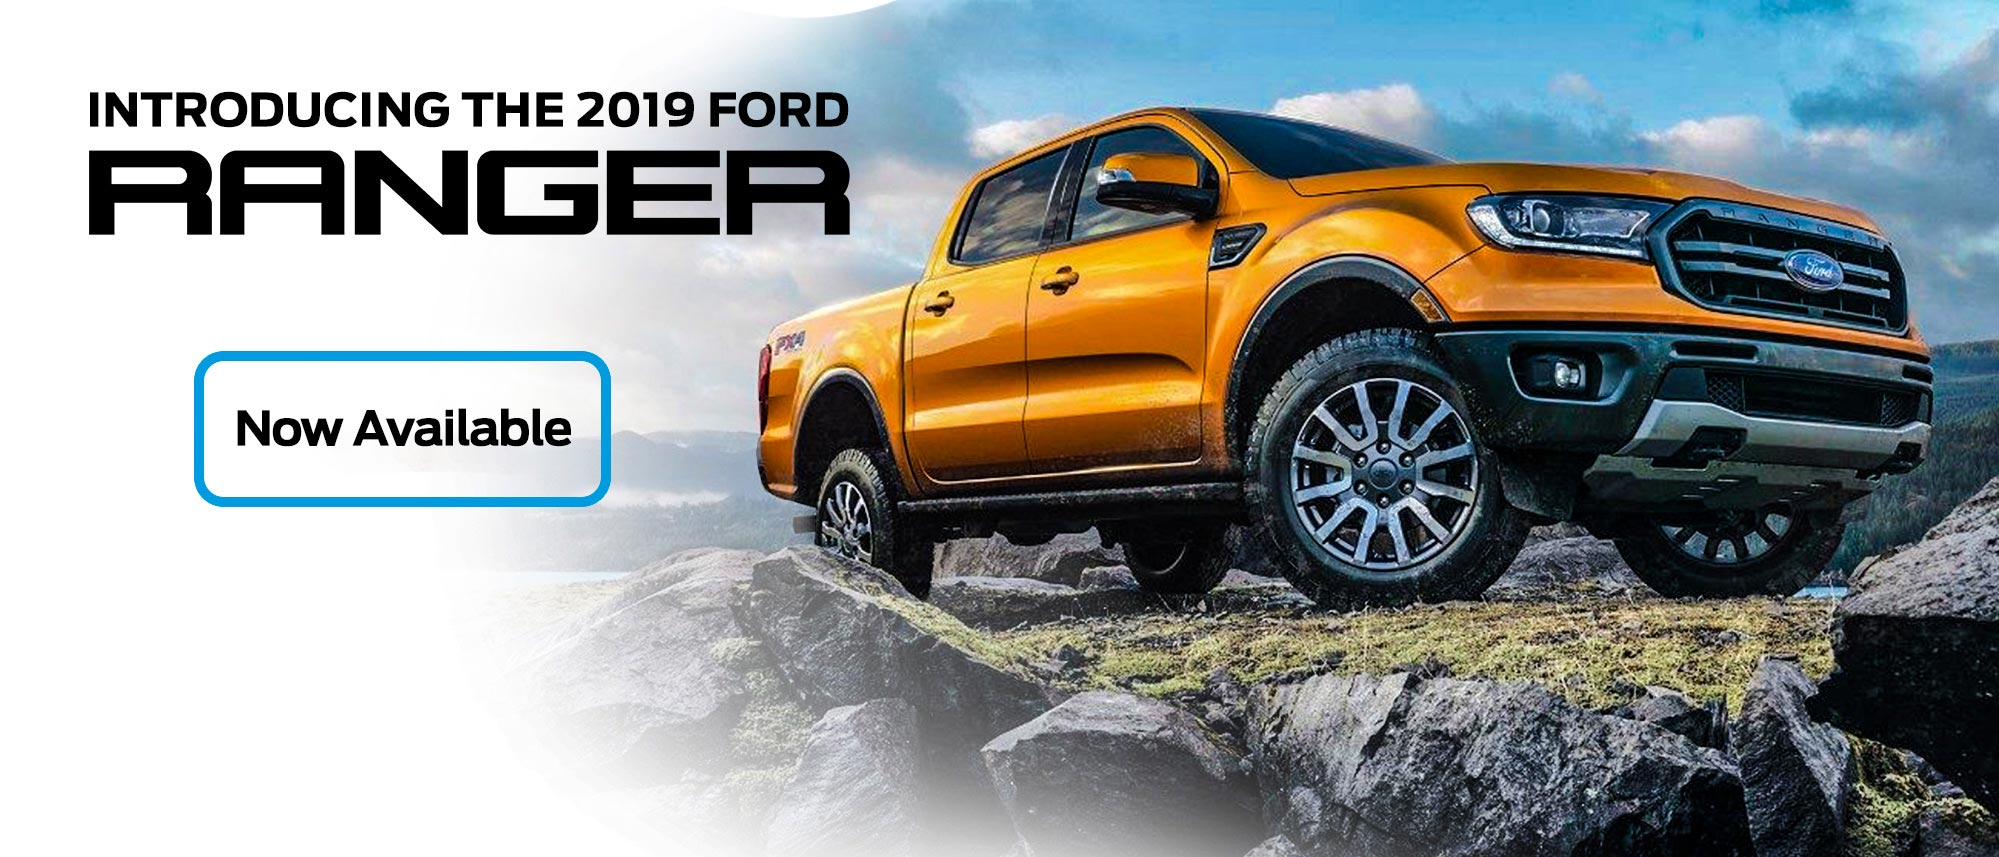 2019 Ford Ranger   Now Available